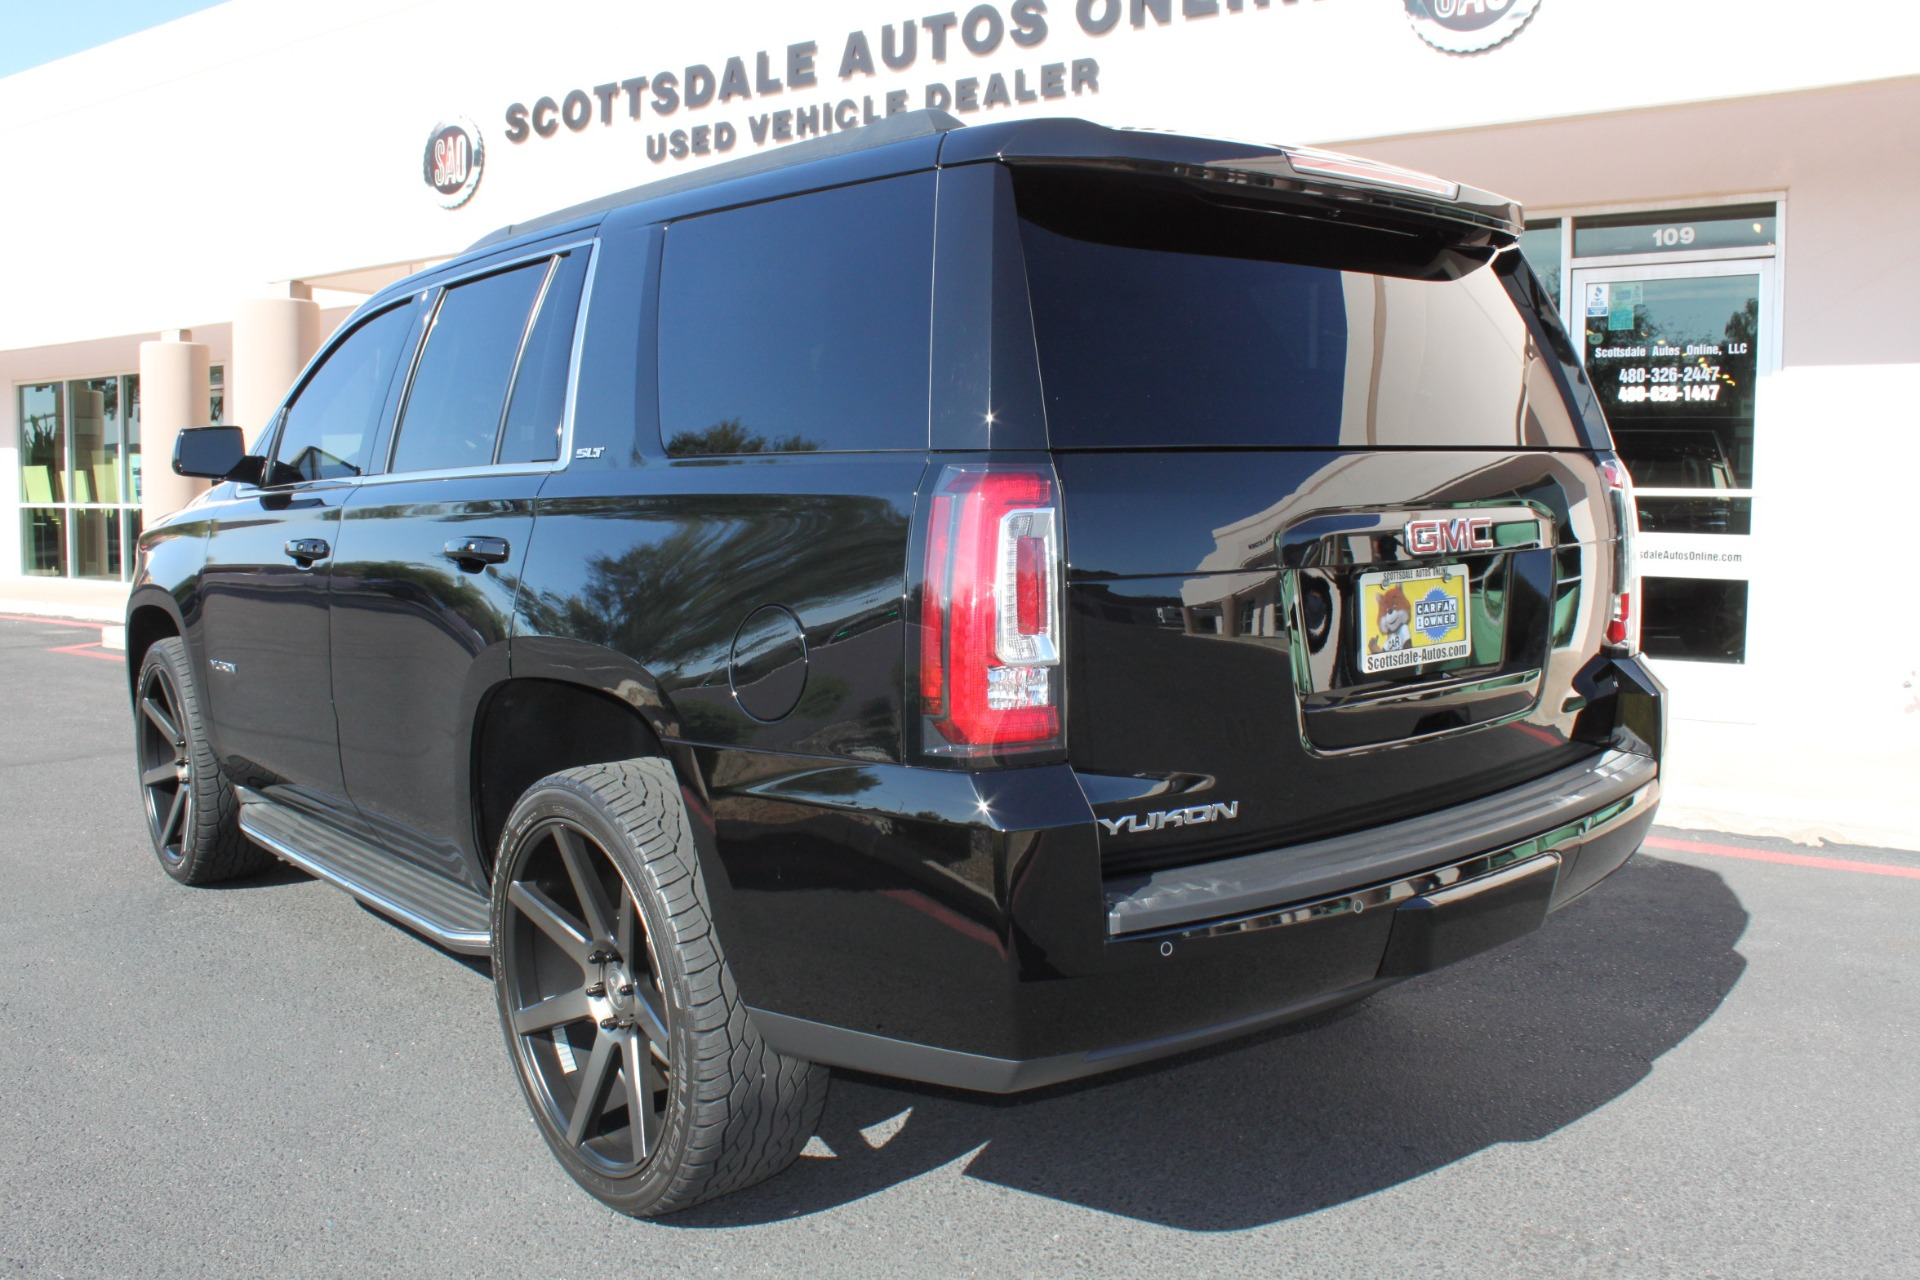 Used-2015-GMC-Yukon-SLT-Grand-Wagoneer